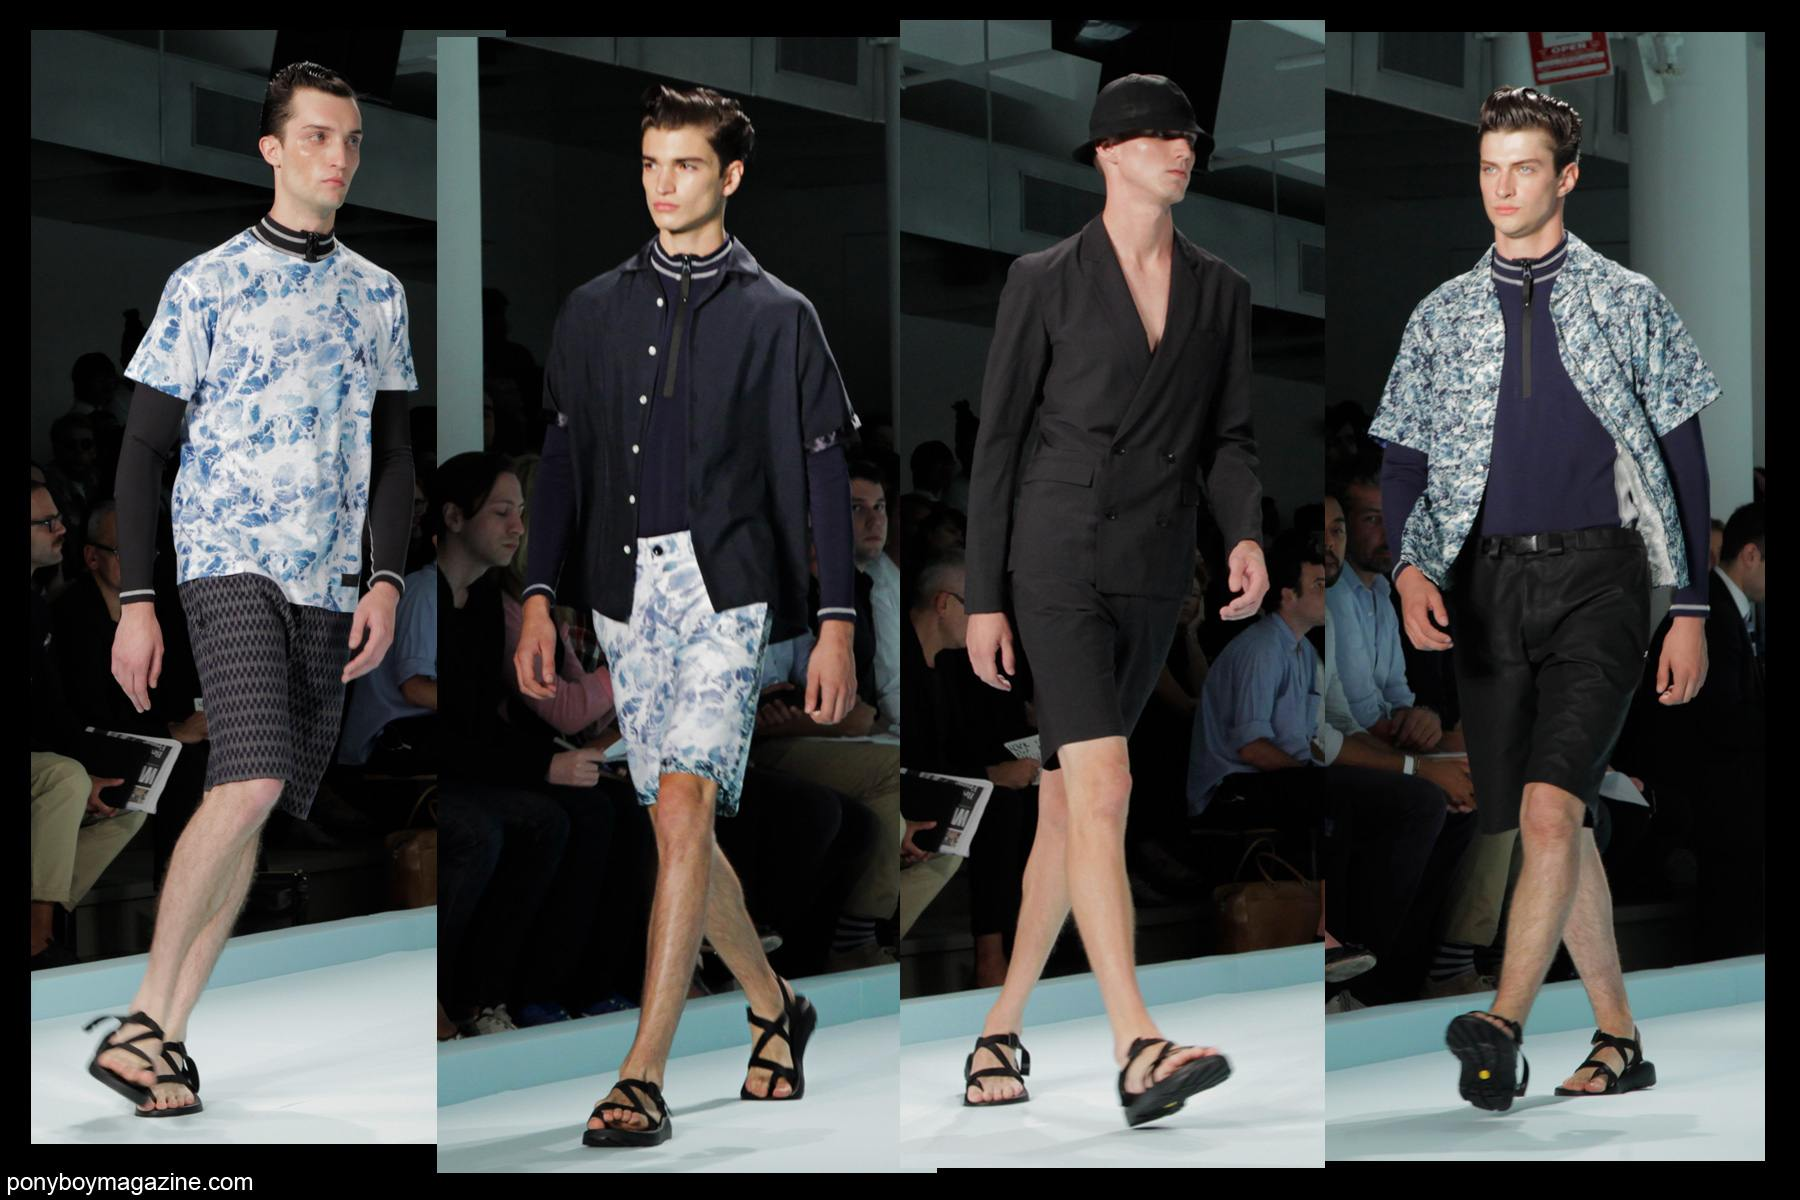 Male models walk for The Patrik Ervell Collection SS 2014, photographed for Ponyboy Magazine by Alexander Thompson.